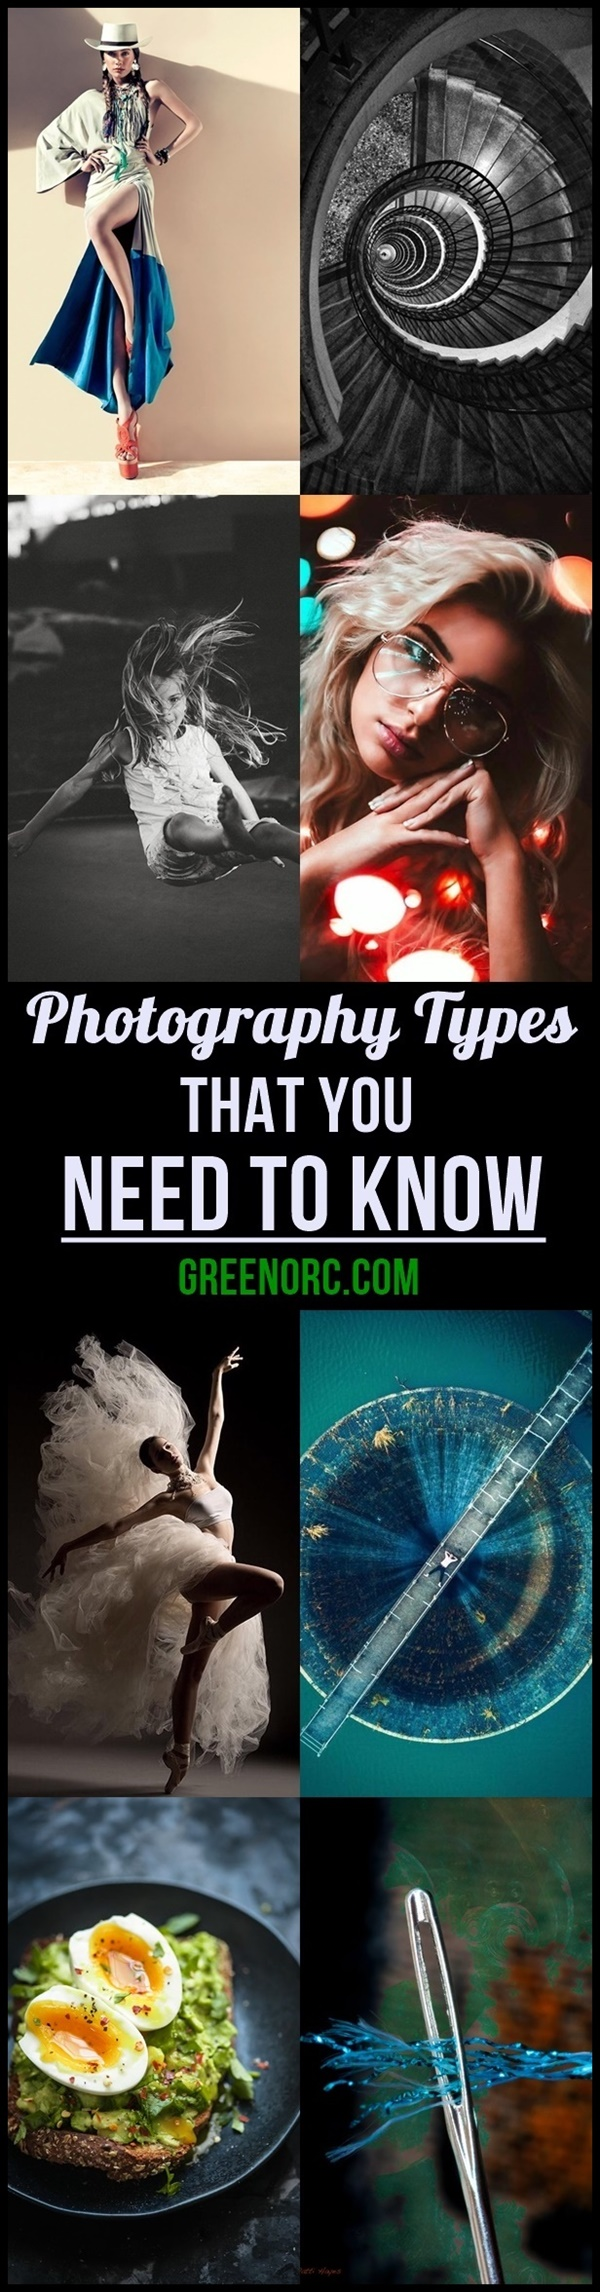 Photography Types That You Need to Know